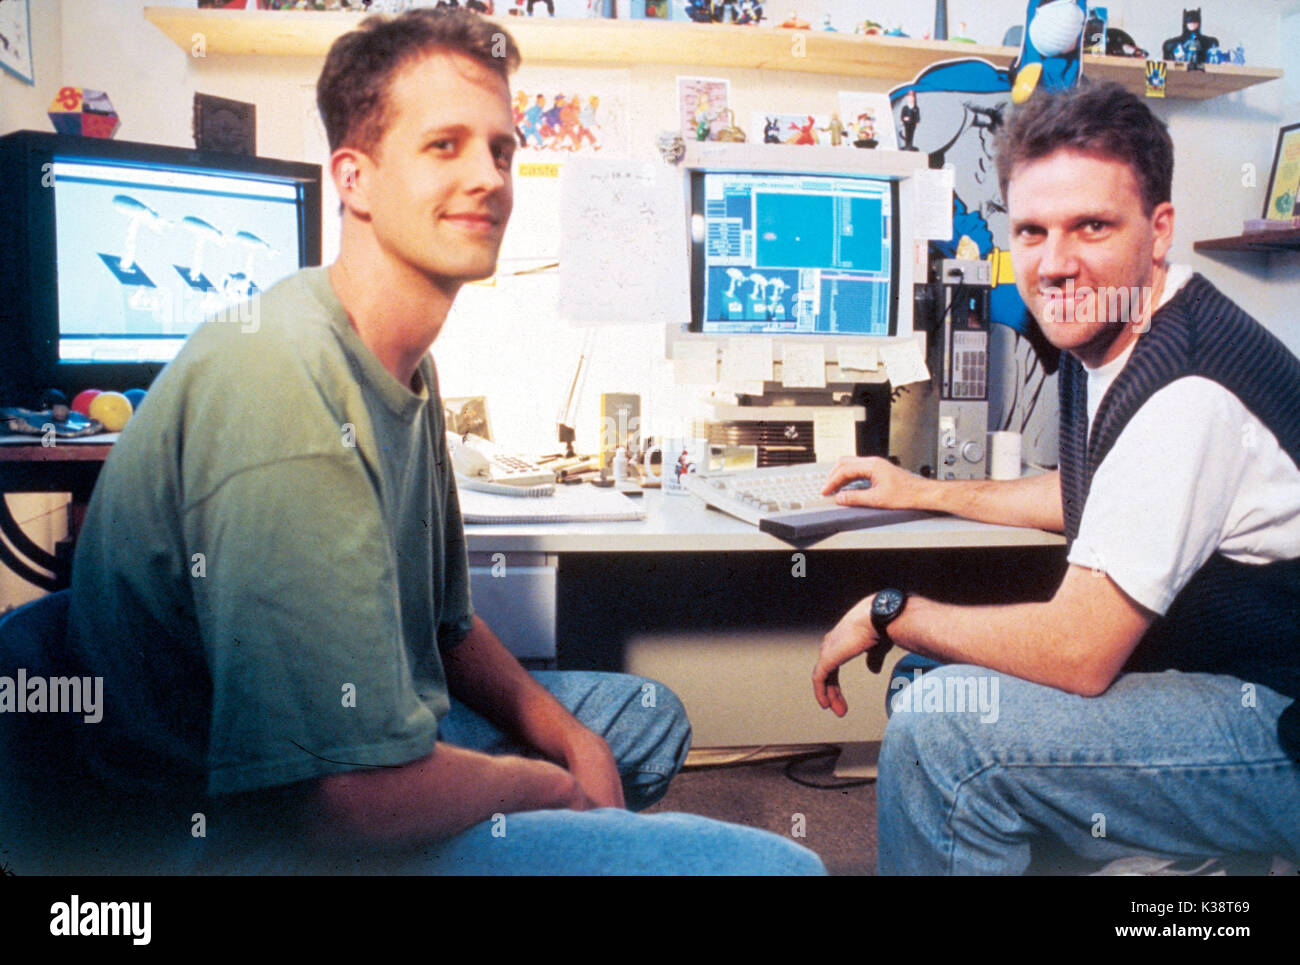 TOY STORY Unidentified computer animators     Date: 1995 - Stock Image